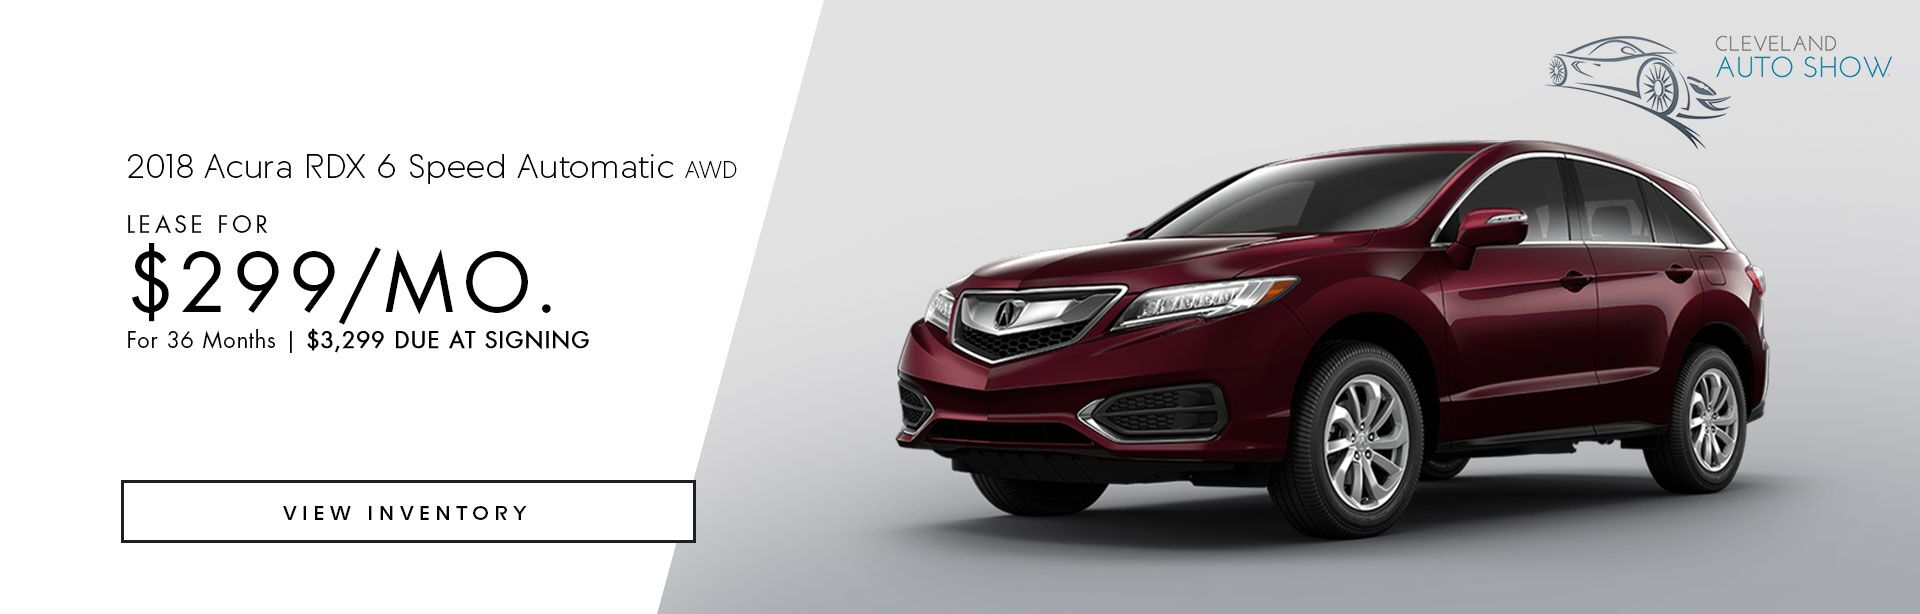 2018 Acura RDX 6 Speed Automatic AWD